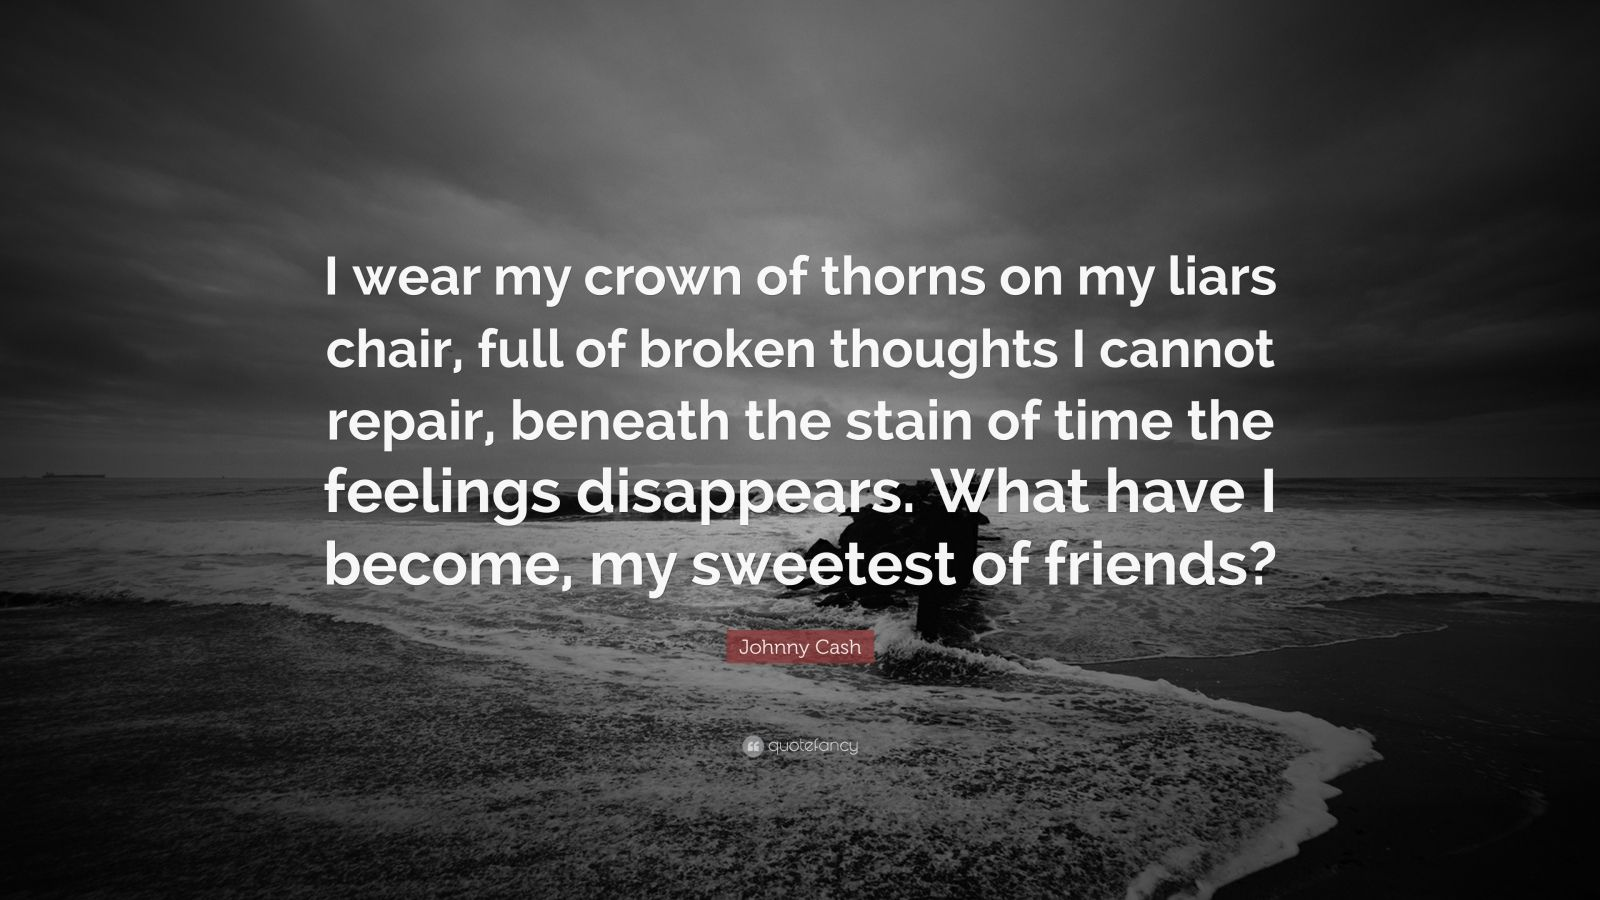 "Johnny Cash Quote: ""I wear my crown of thorns on my liars chair, full of broken thoughts I cannot repair, beneath the stain of time the feelings disappears. What have I become, my sweetest of friends?"""